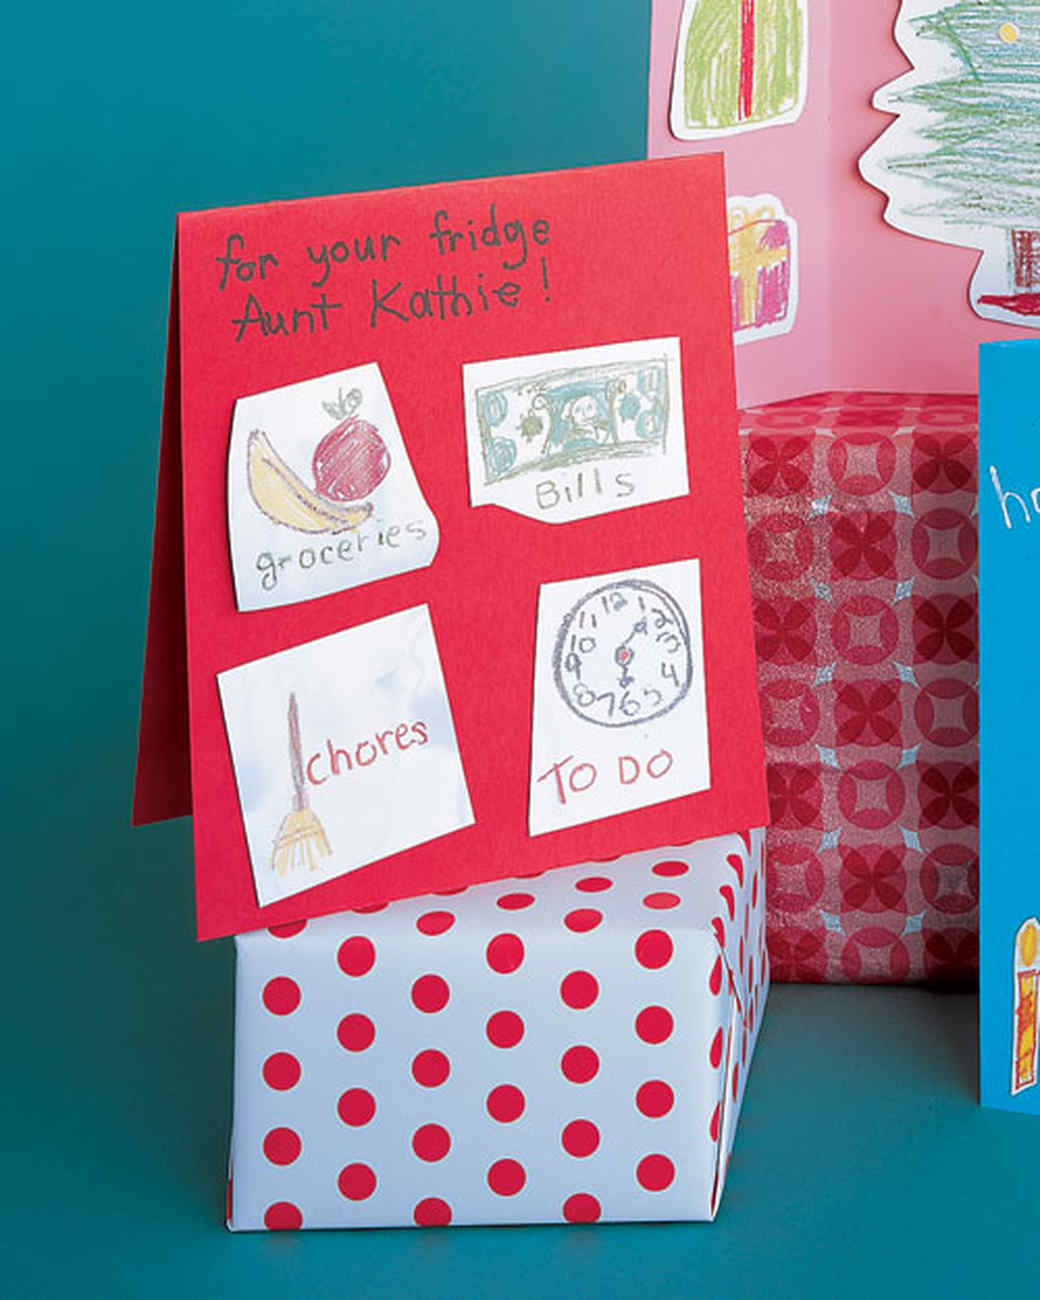 Toddler Made Christmas Gifts  Christmas Gifts Kids Can Make for Parents Grandparents